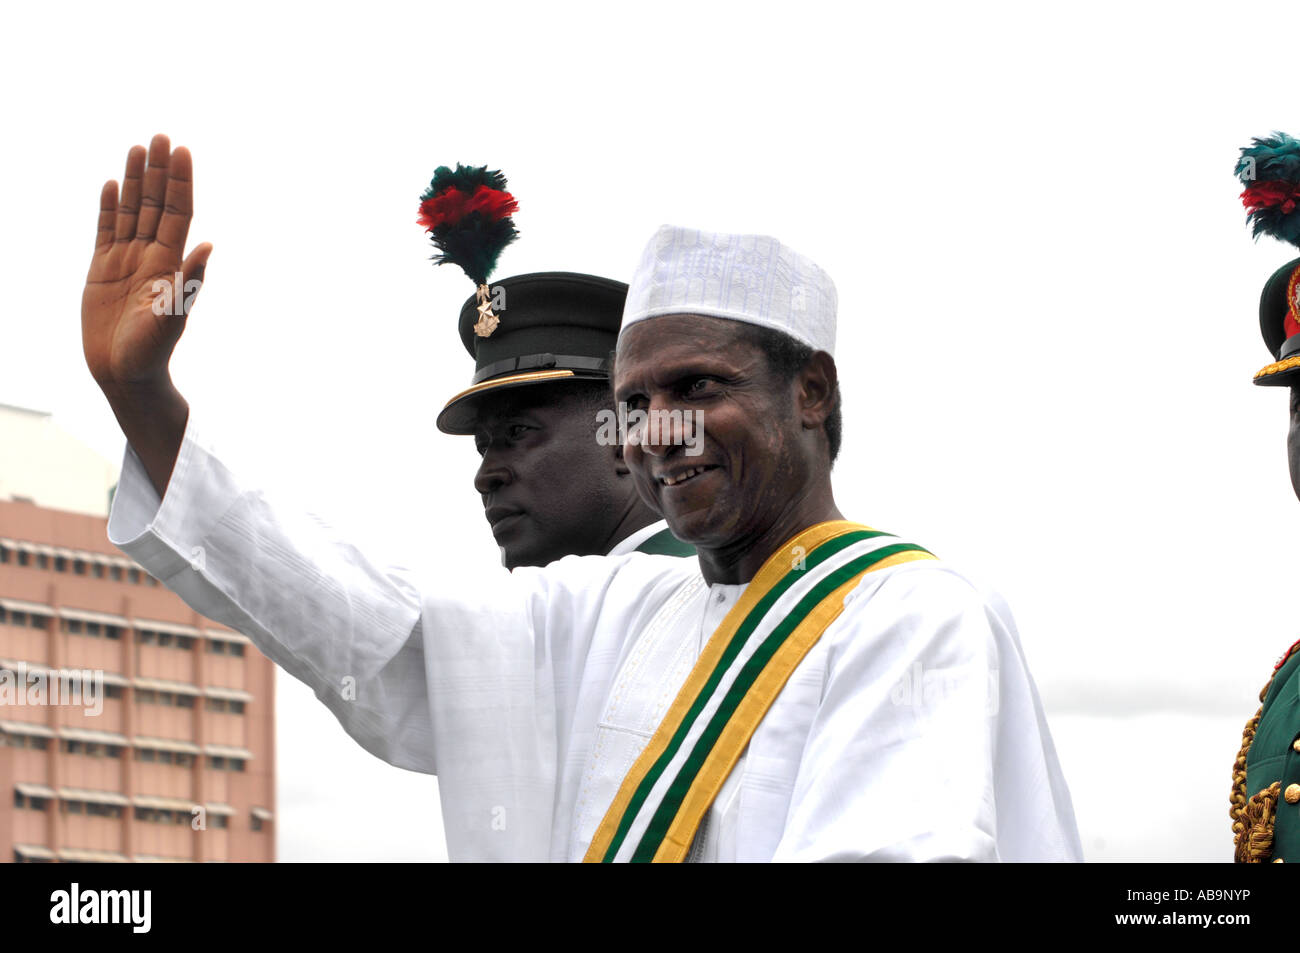 Umaru Musa Yar Adua on the day of his inauguration as the new President of Nigeria - Stock Image